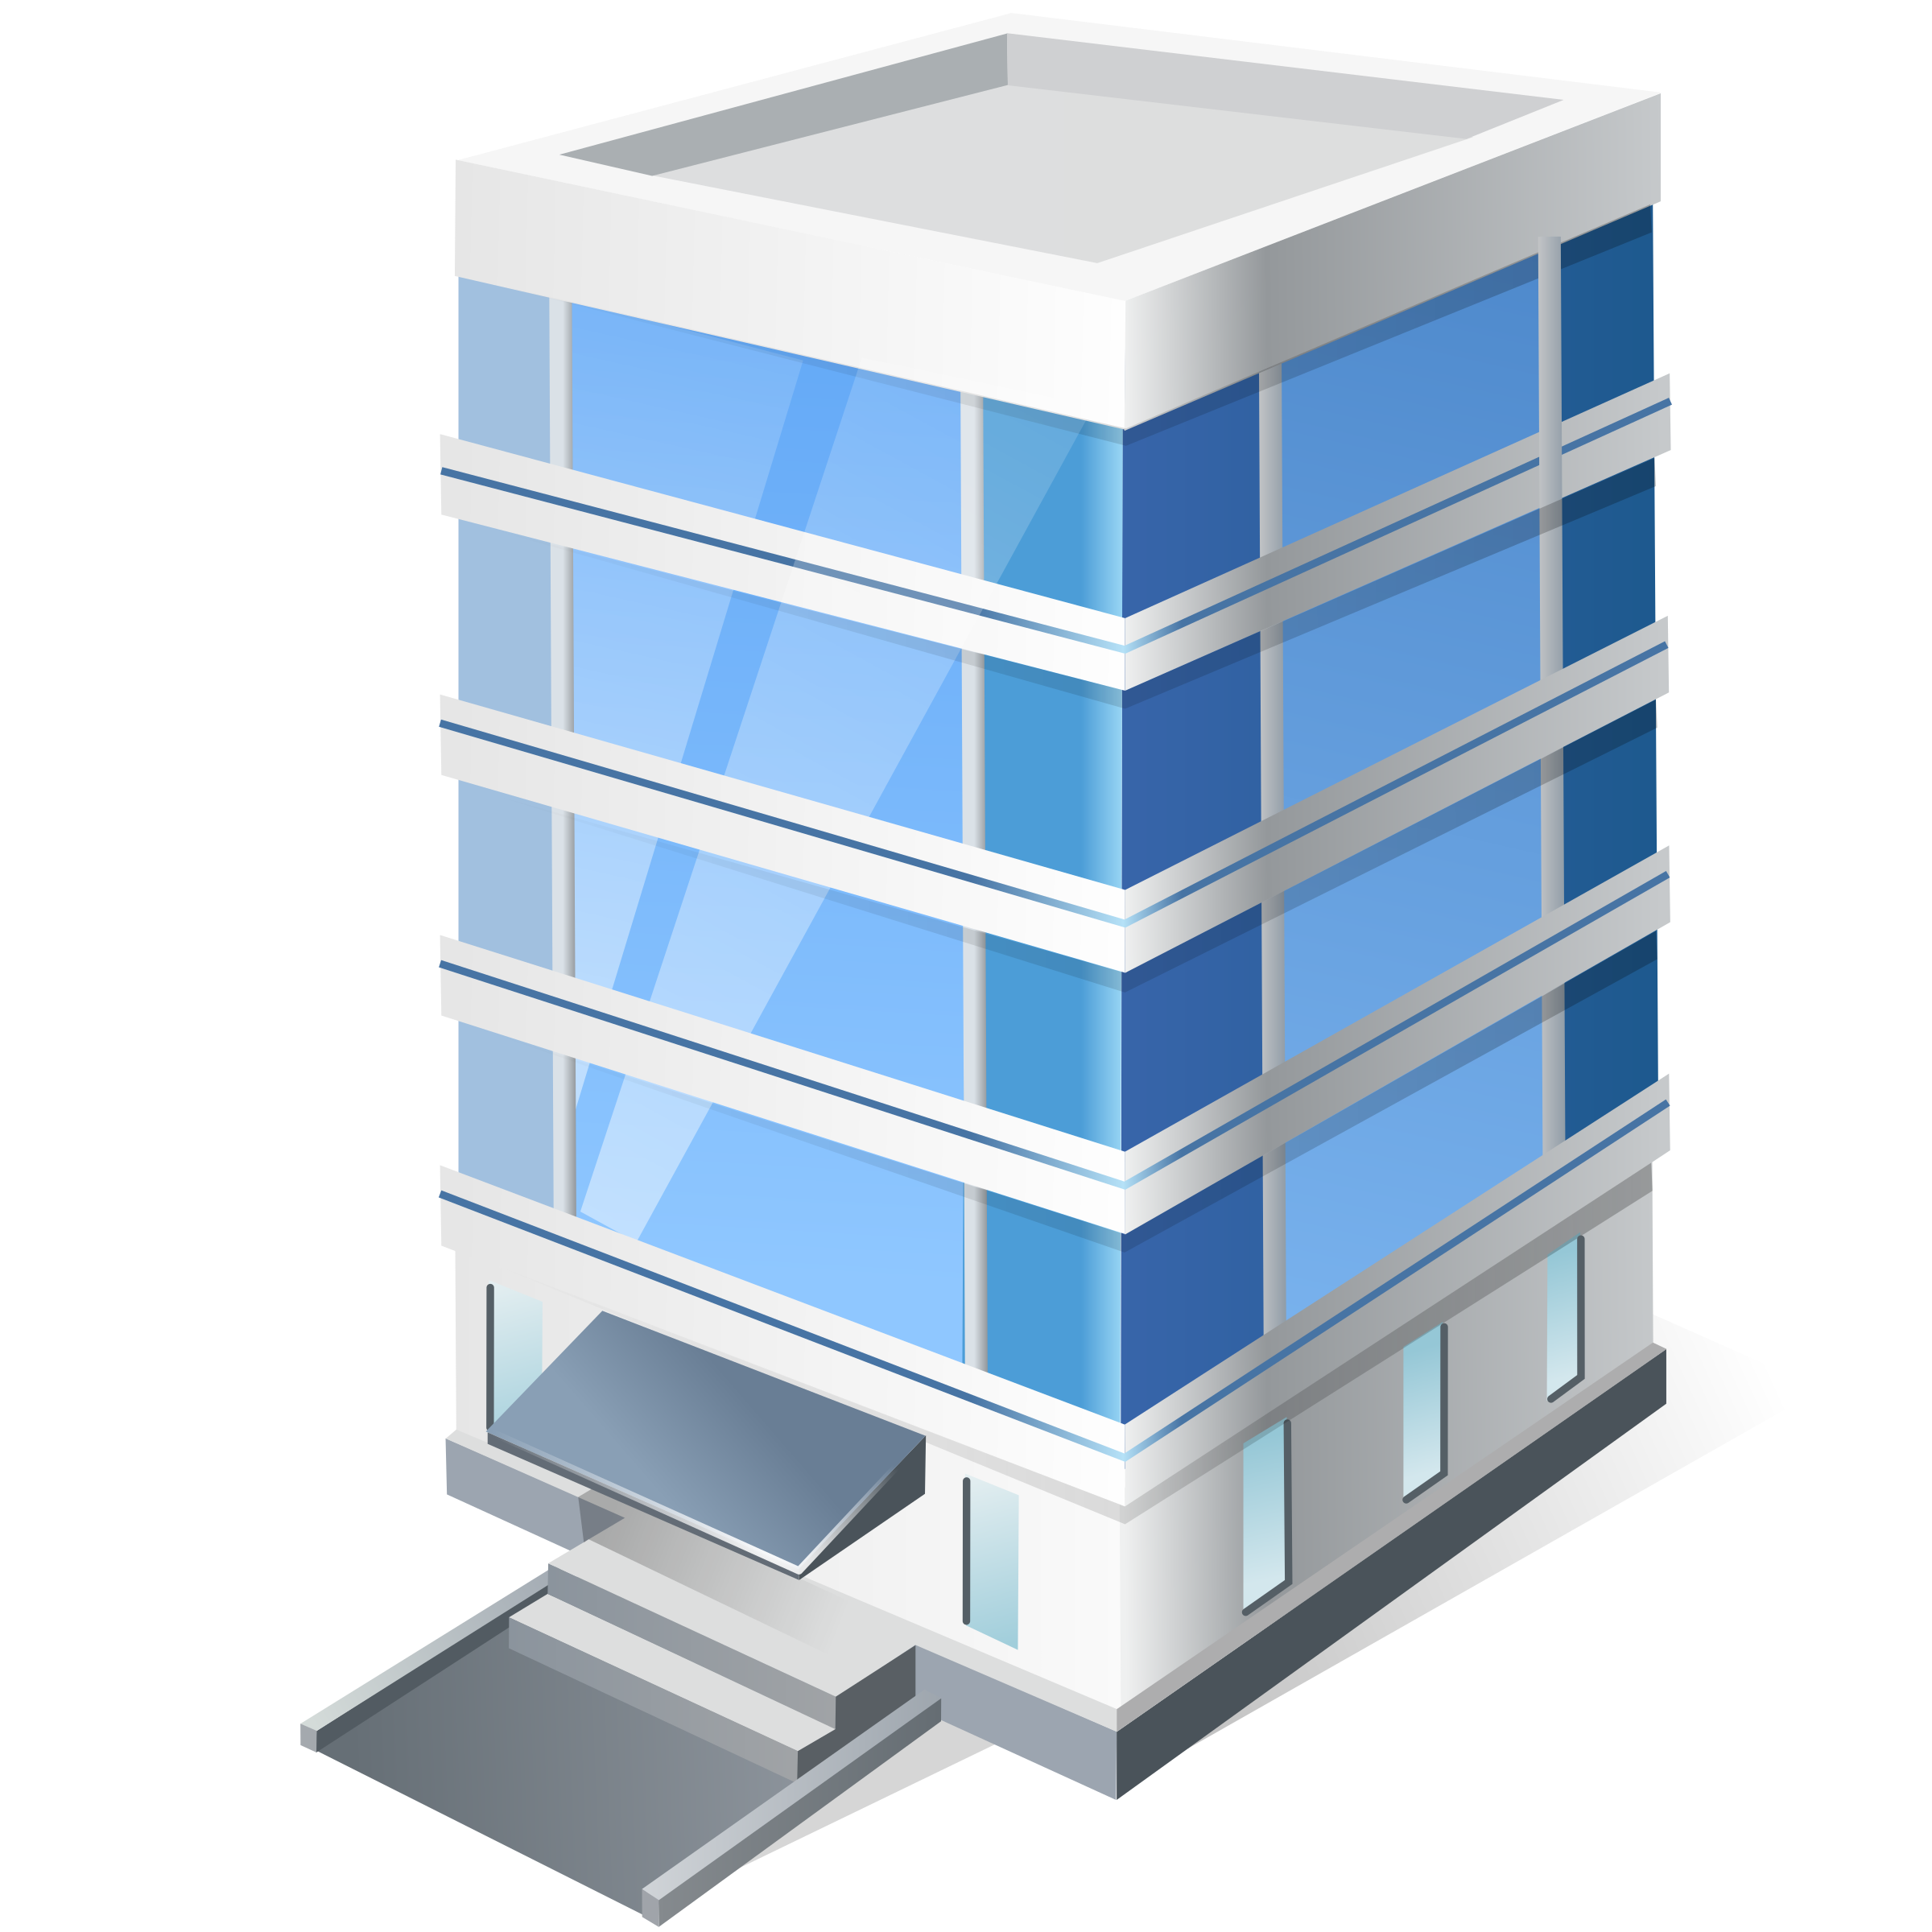 Commercial building clipart #12